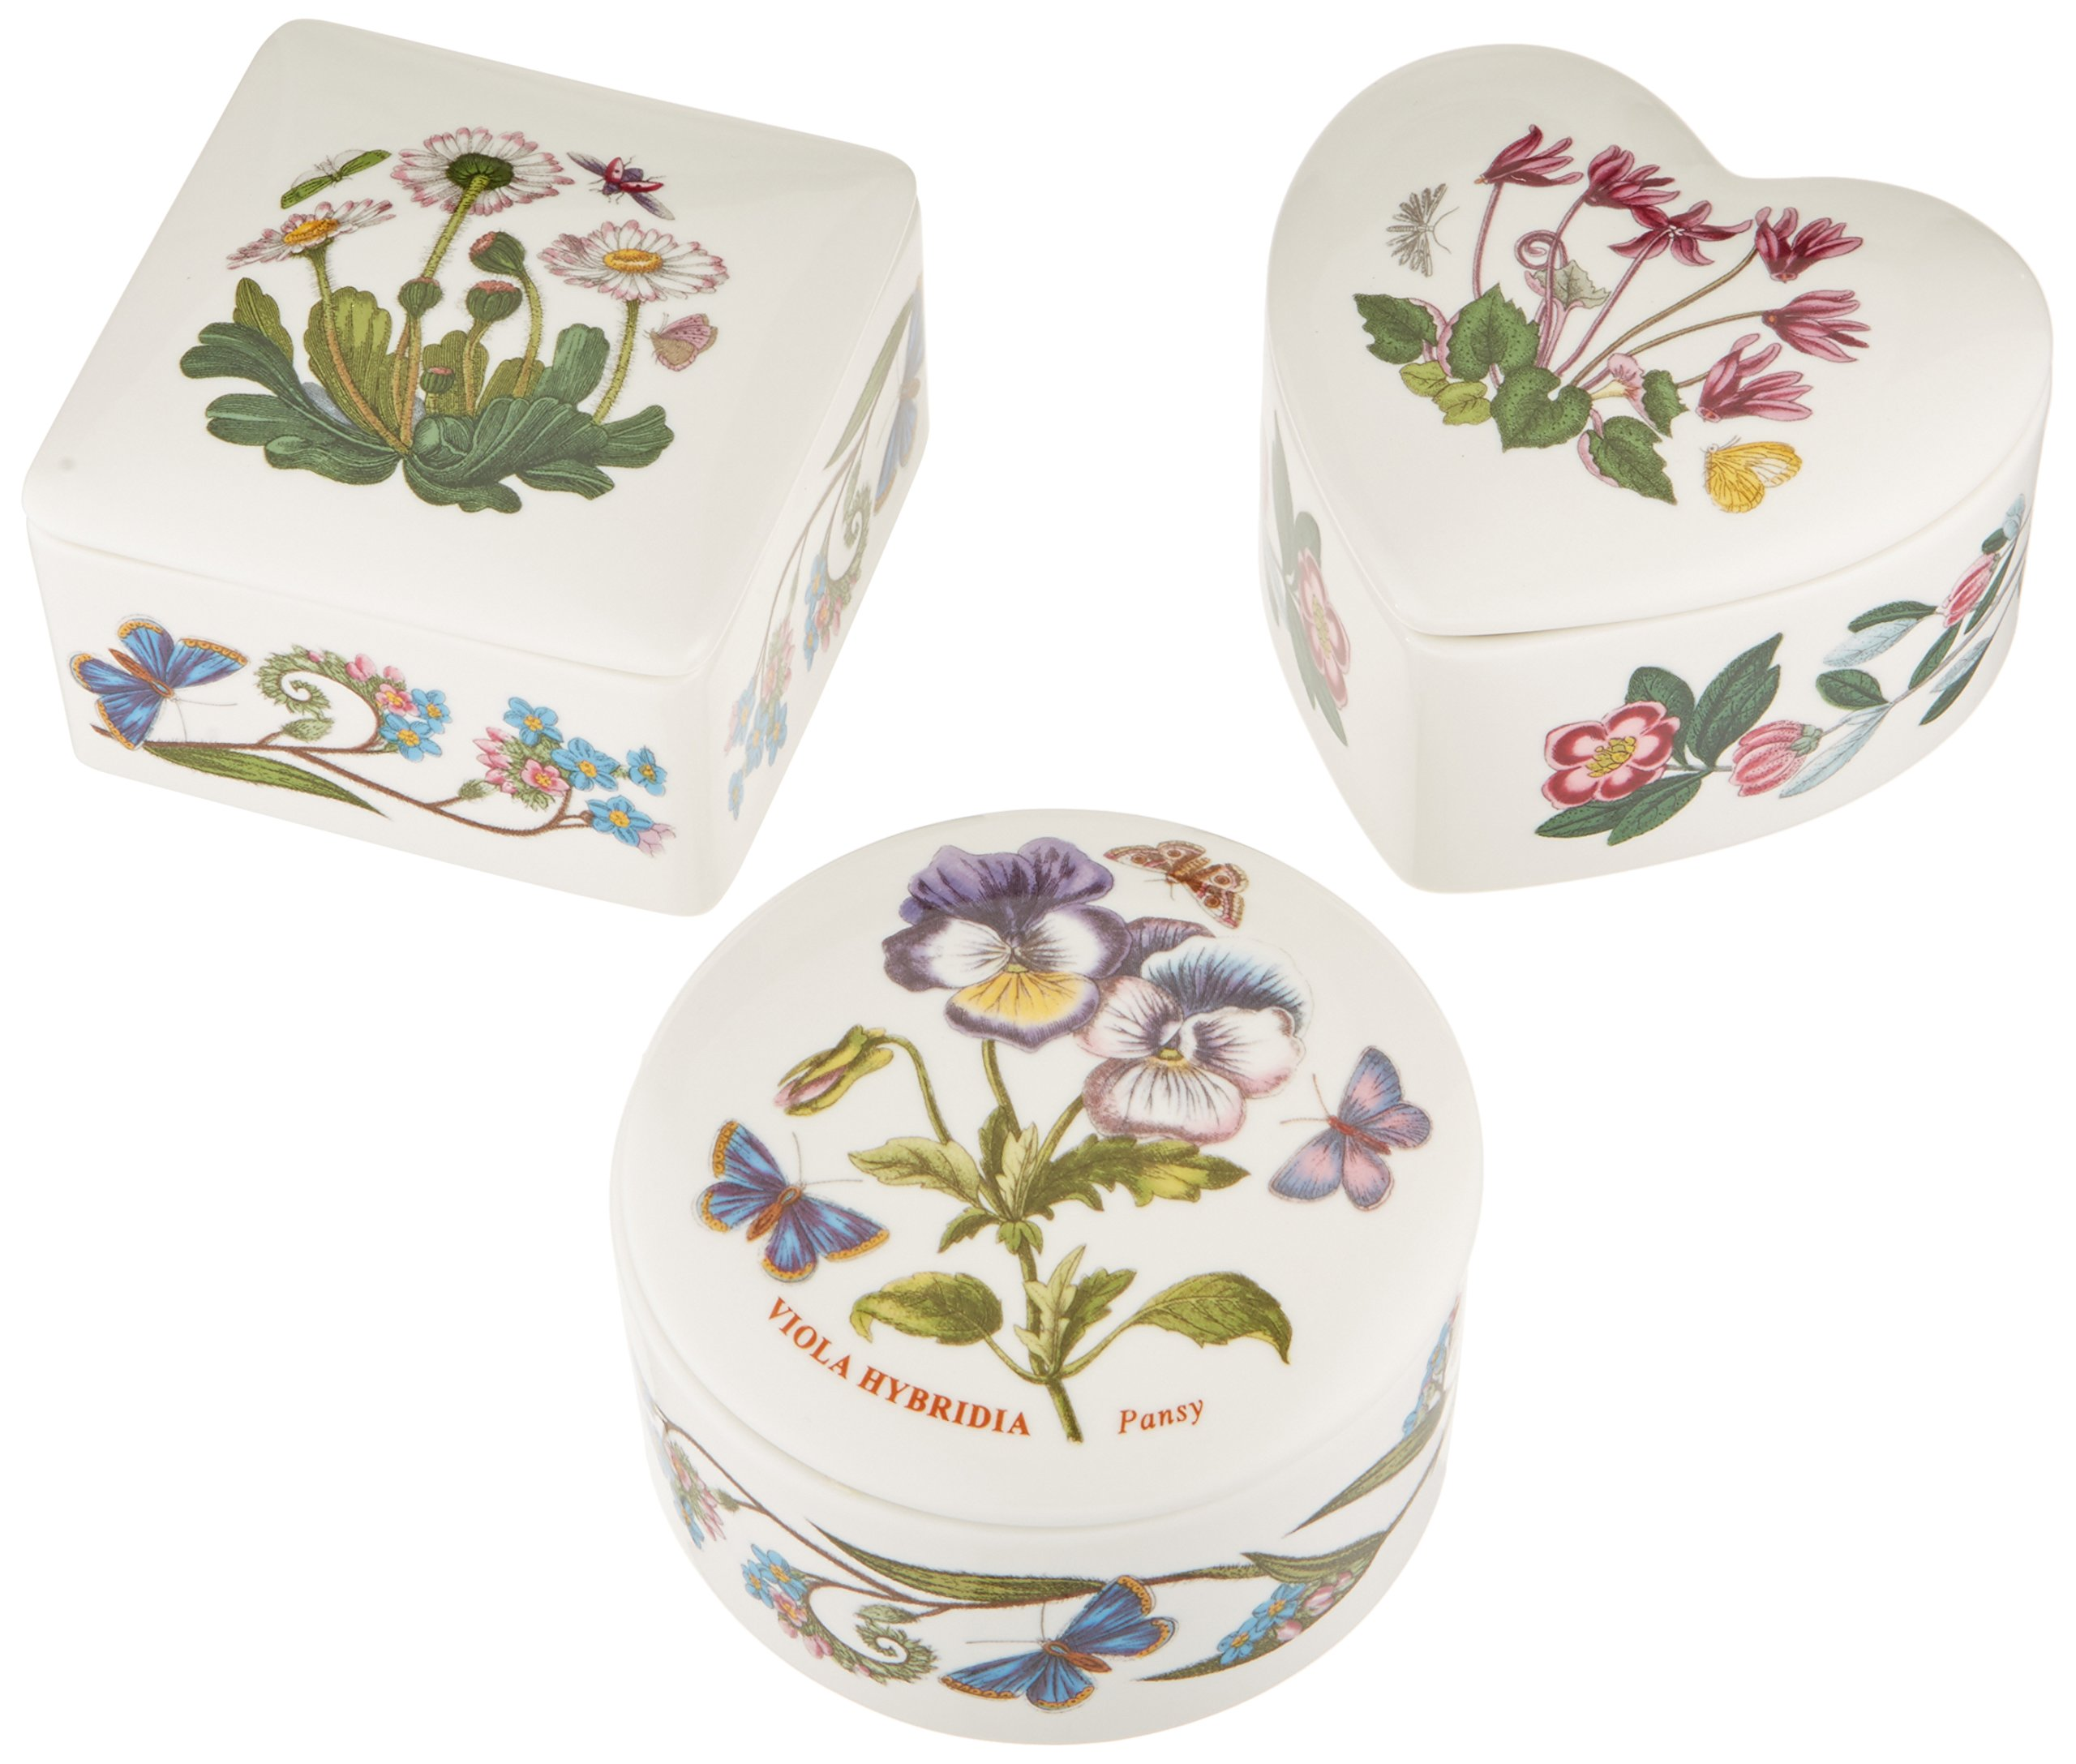 Portmeirion Botanic Garden Covered Boxes, Set of 3